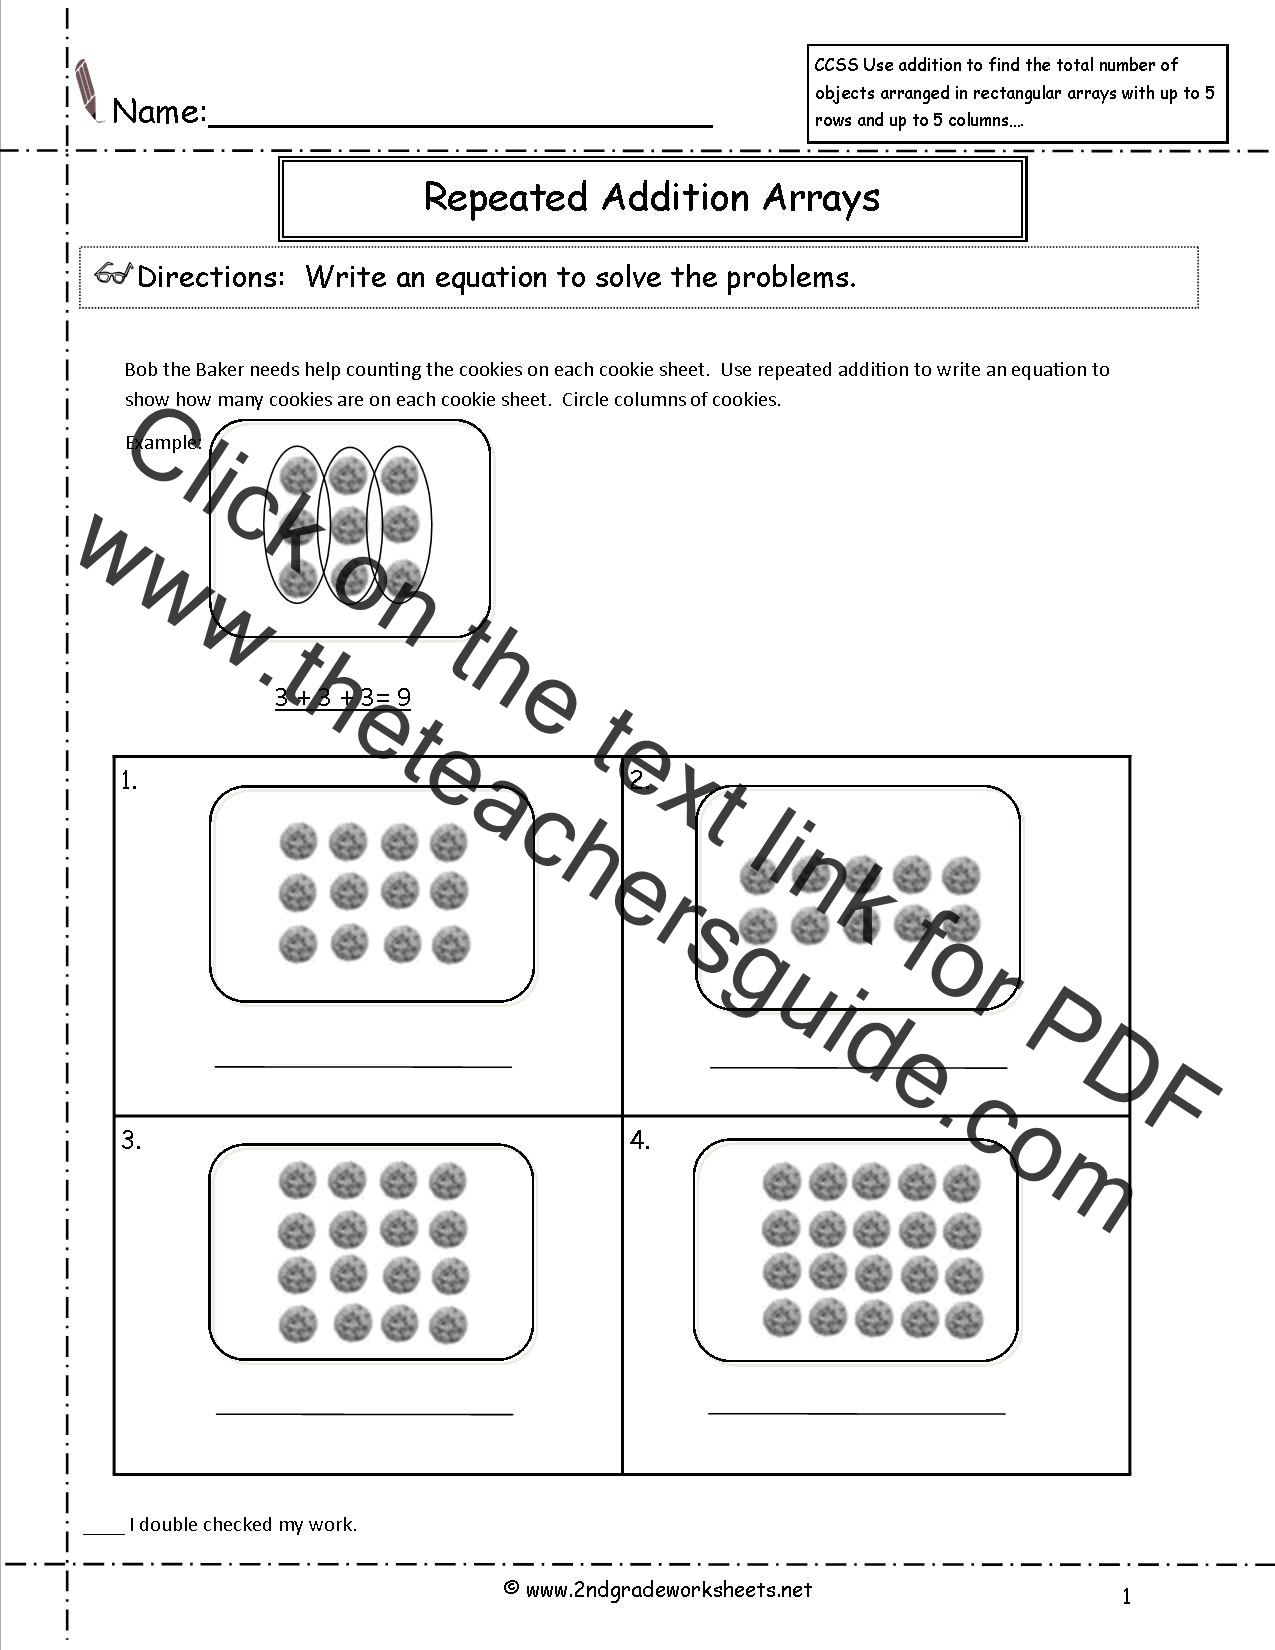 {CCSS 2OA4 Worksheets – Repeated Addition Worksheets for 2nd Grade